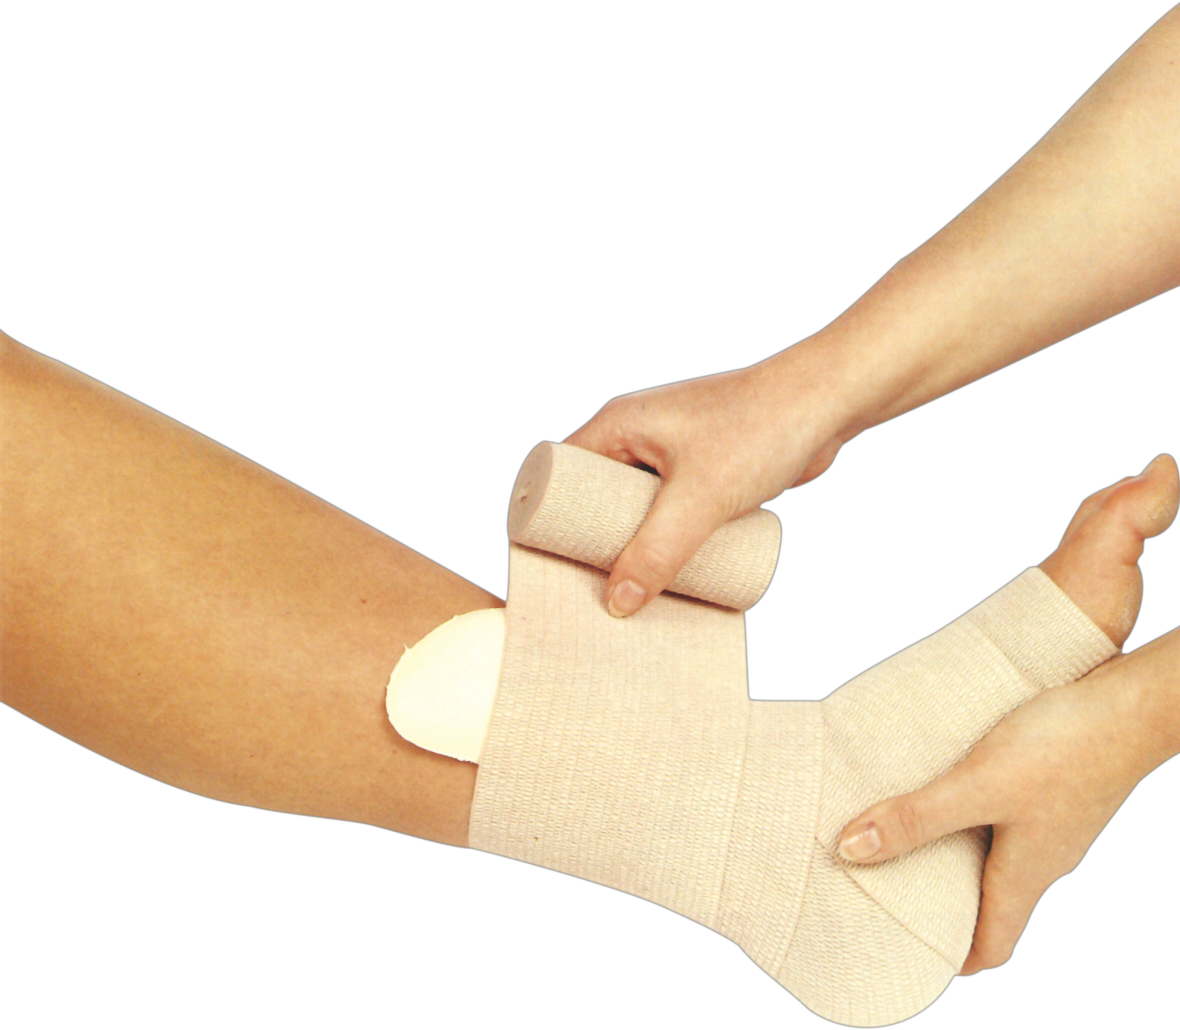 High quality Medical Elastic Compression Bandage with high cotton content and ribbed surface.